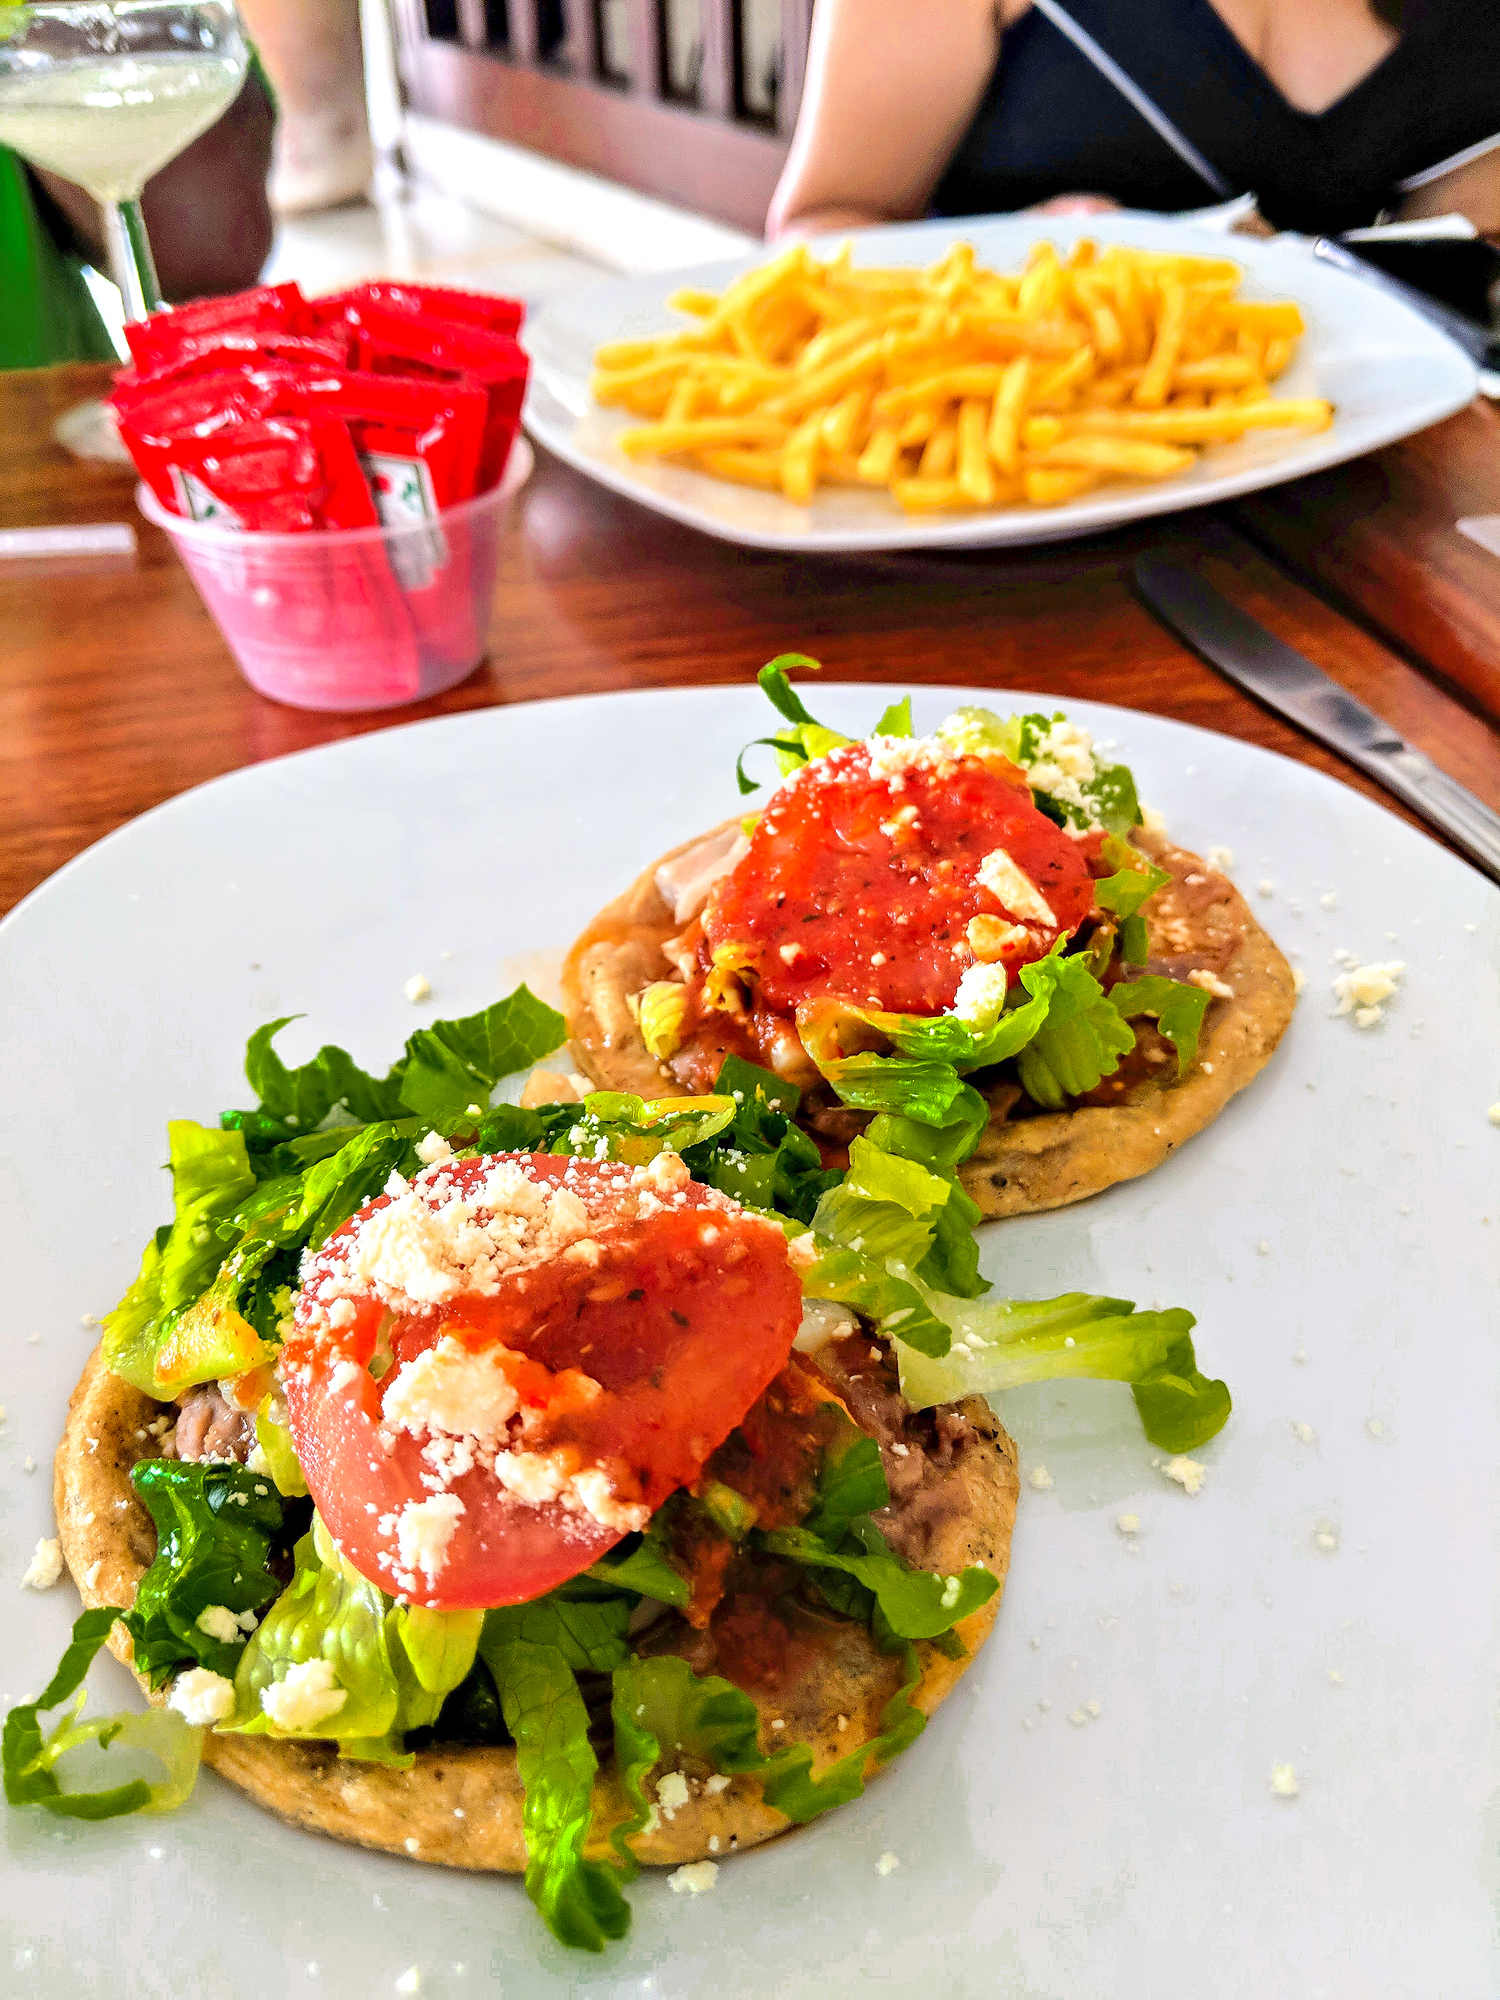 Sopes gordos are just one of 29 things to eat in Colima Mexico, discover the others.